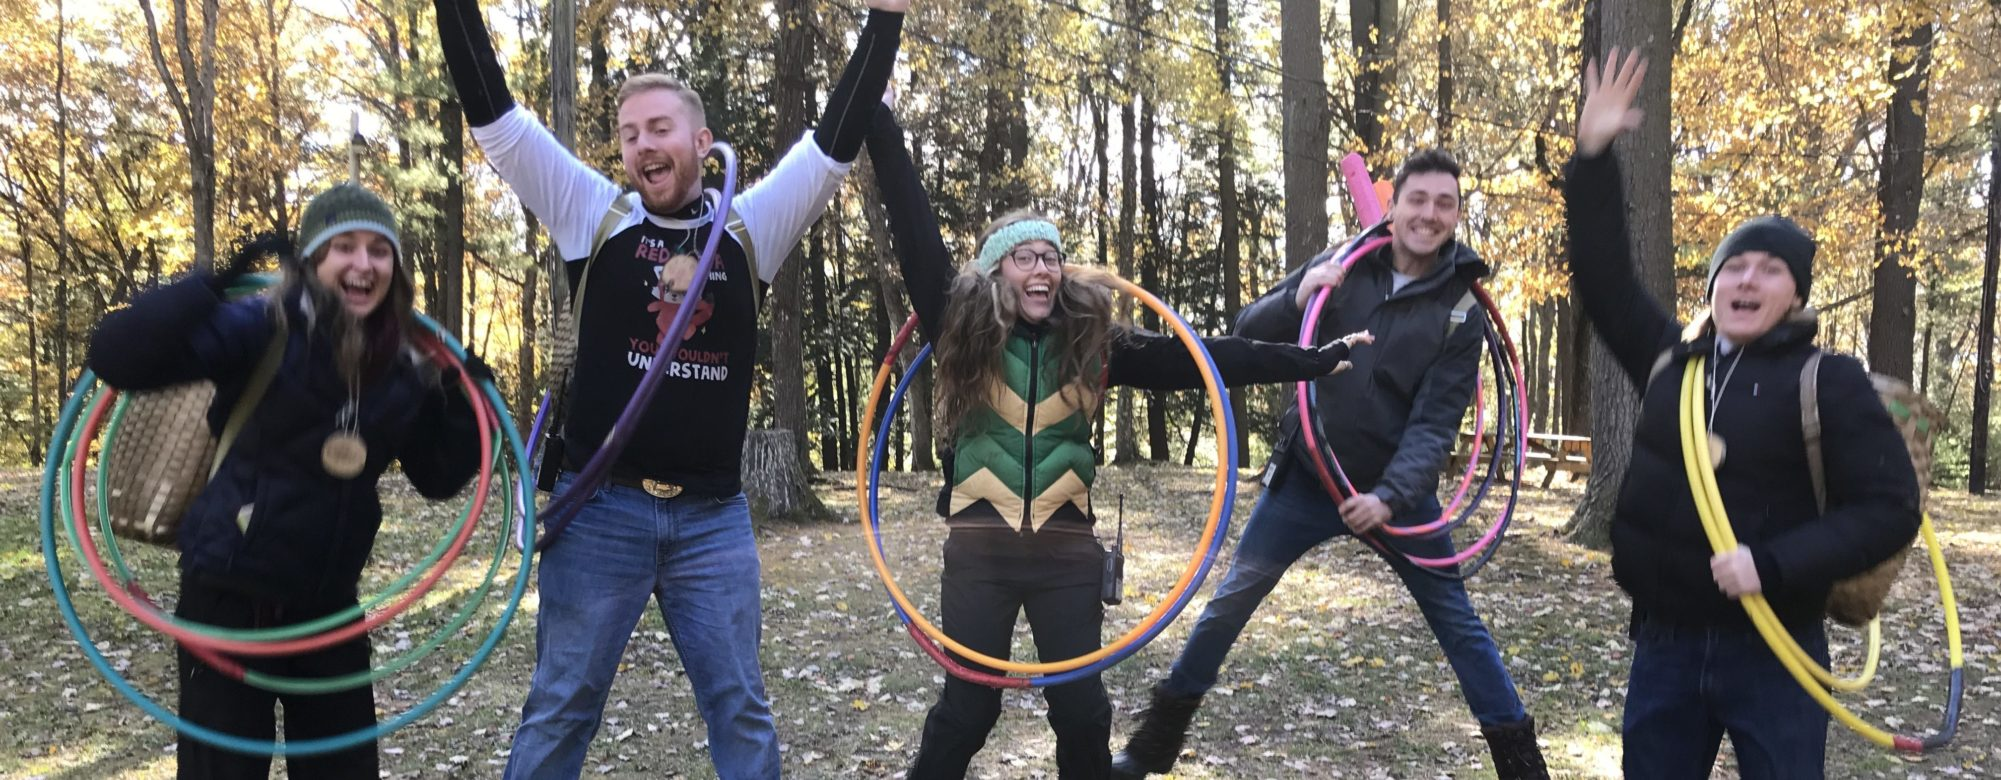 Five camp counselors with hula hoops